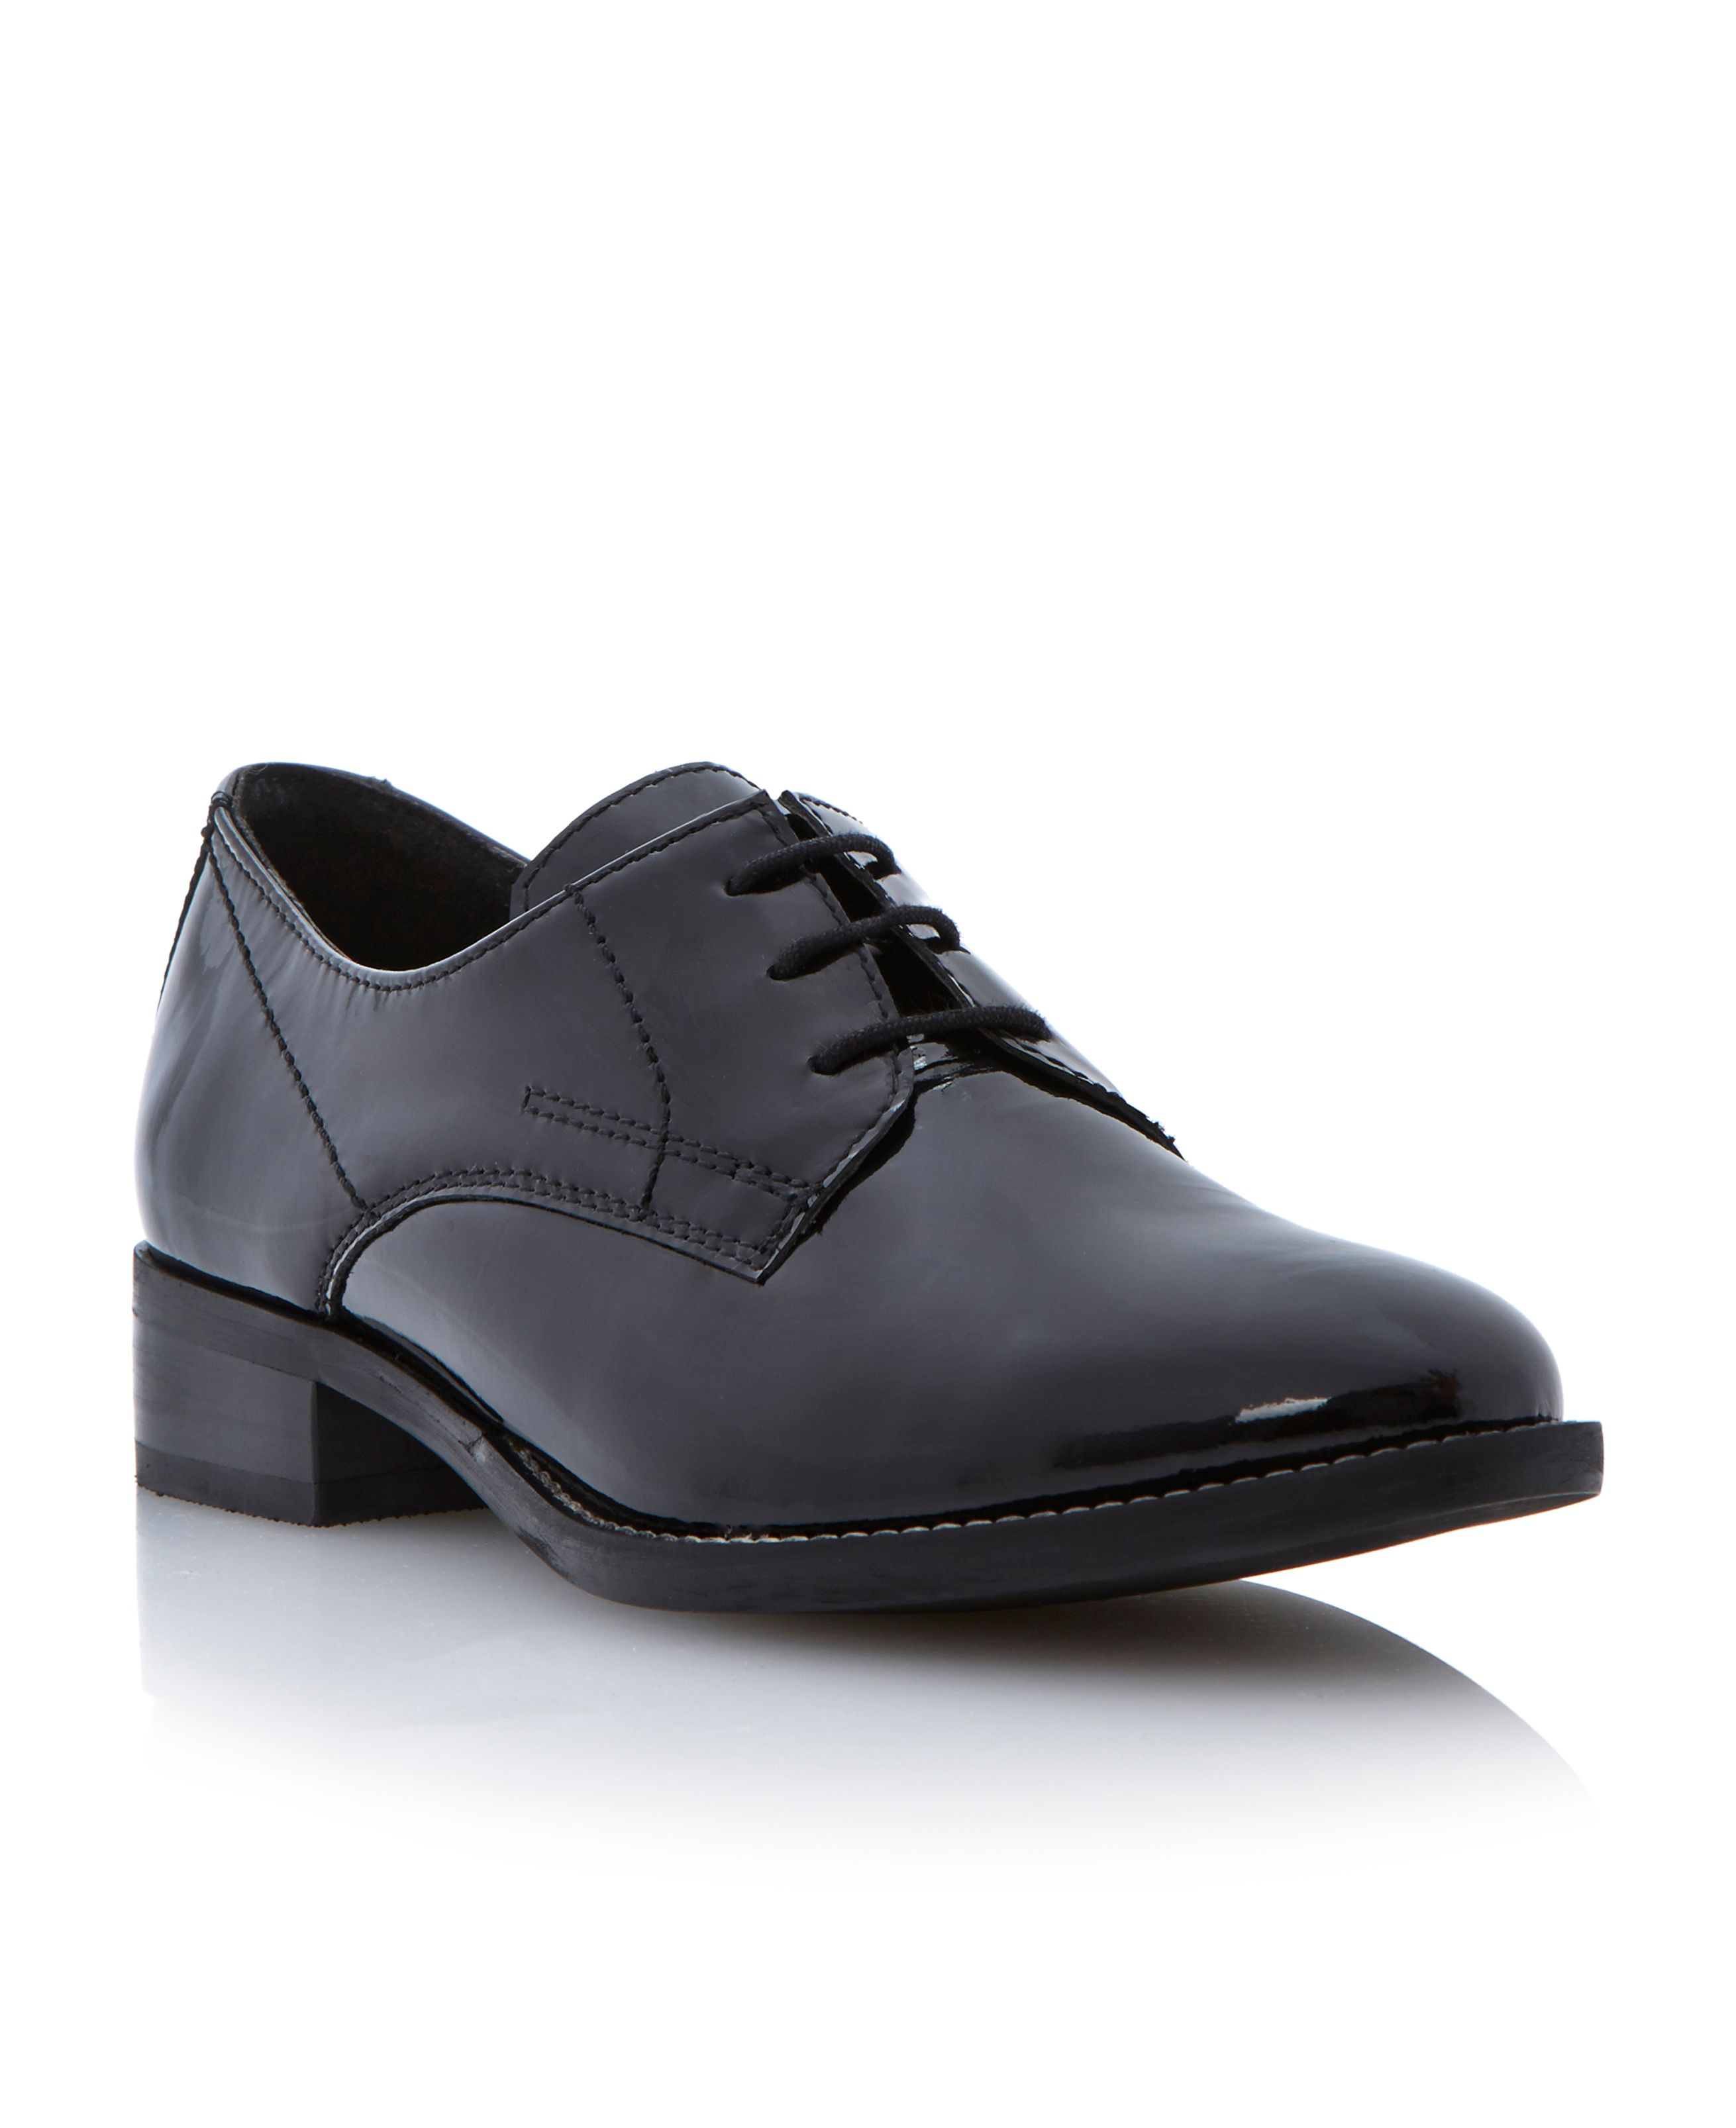 dune lima patent leather lace up shoes in black black